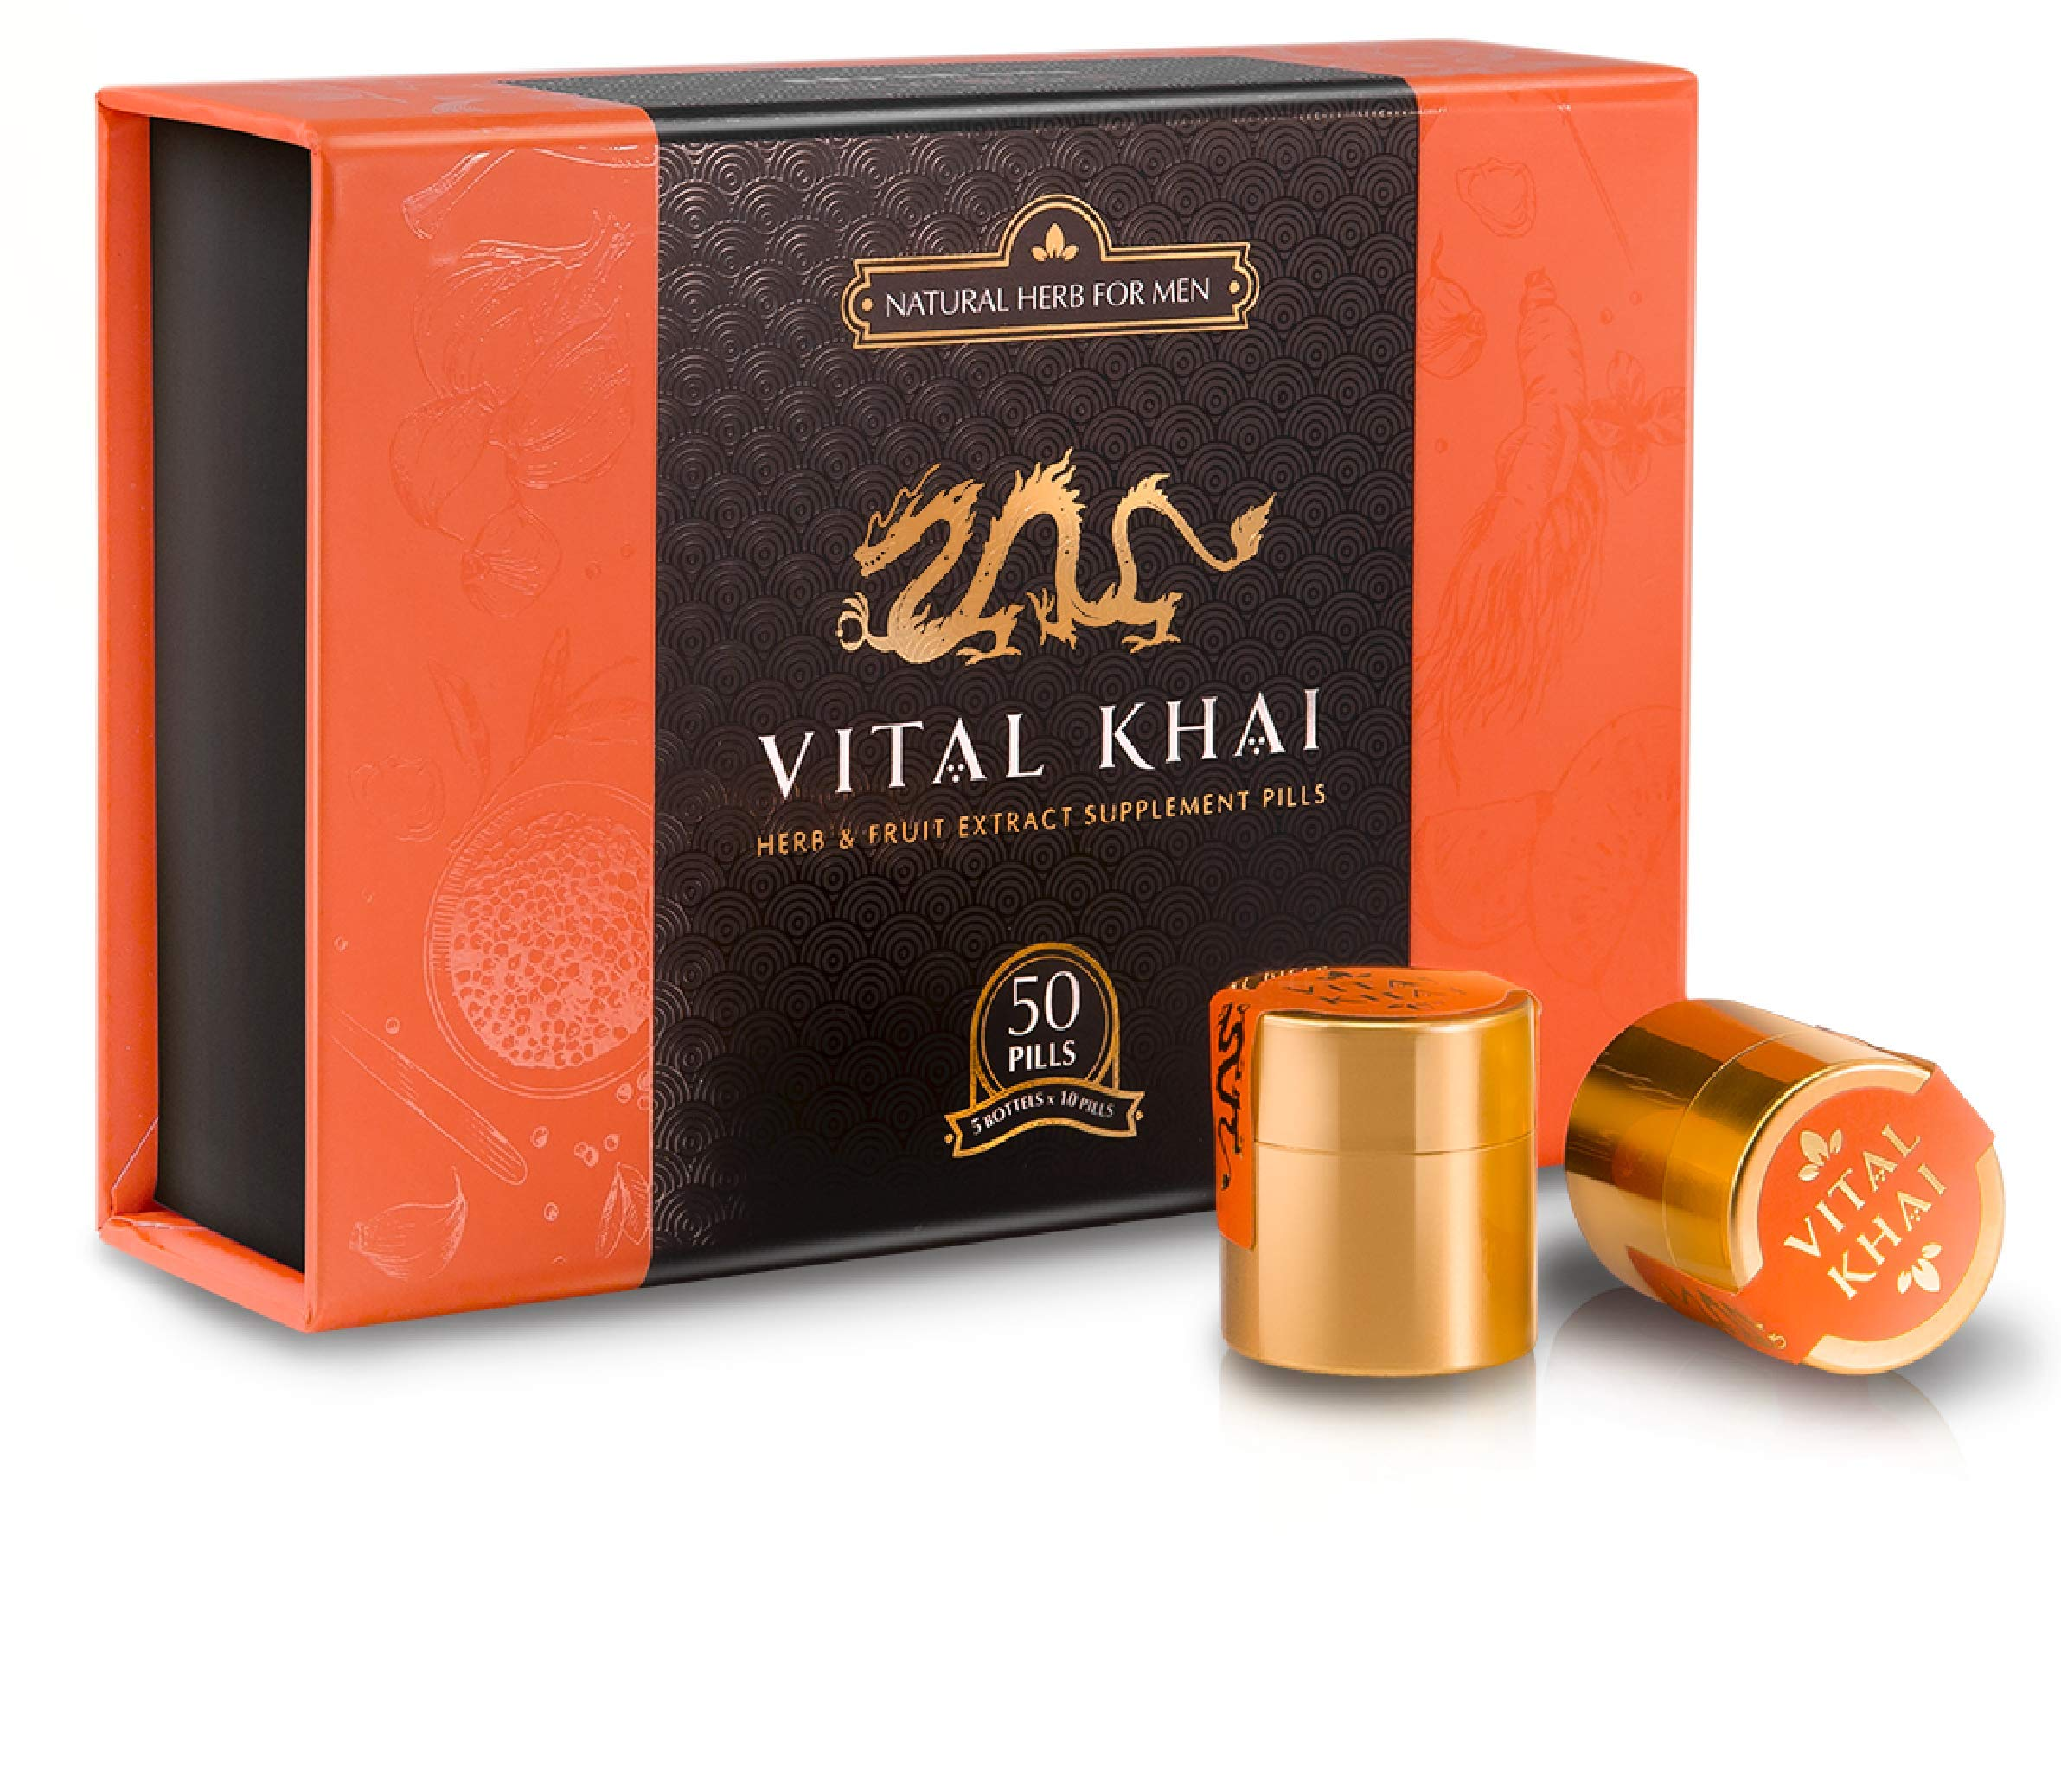 Vital Khai Box - Natural and Herbal Supplement for Men - Increase Energy, Stamina and Health (Full Box, 50 Supplements)